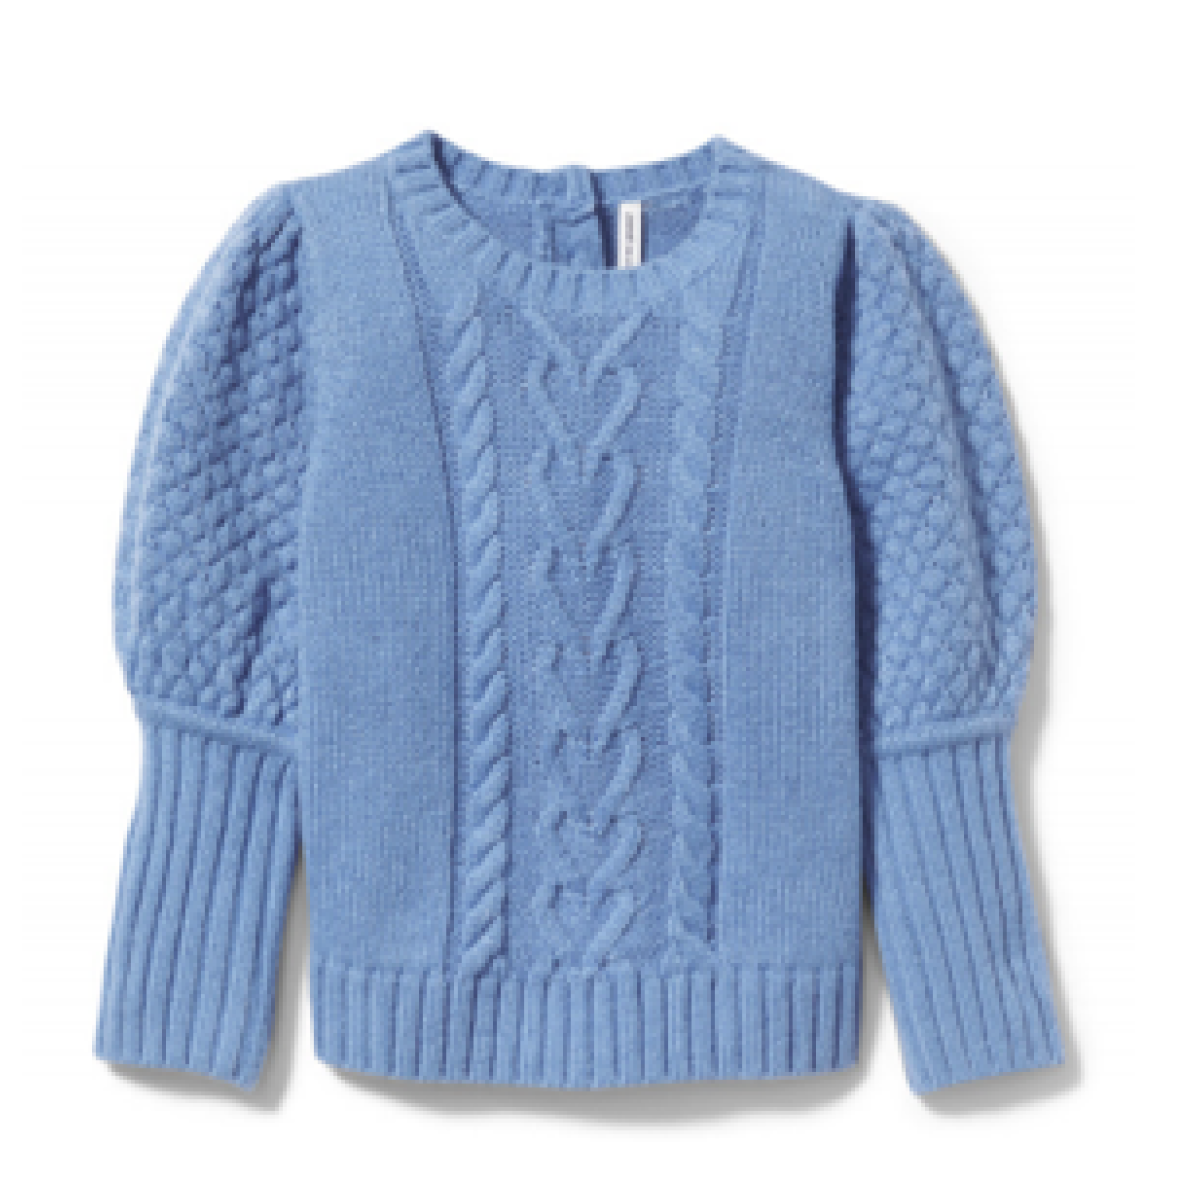 Janie and Jack Puff Sleeve Cable Knit